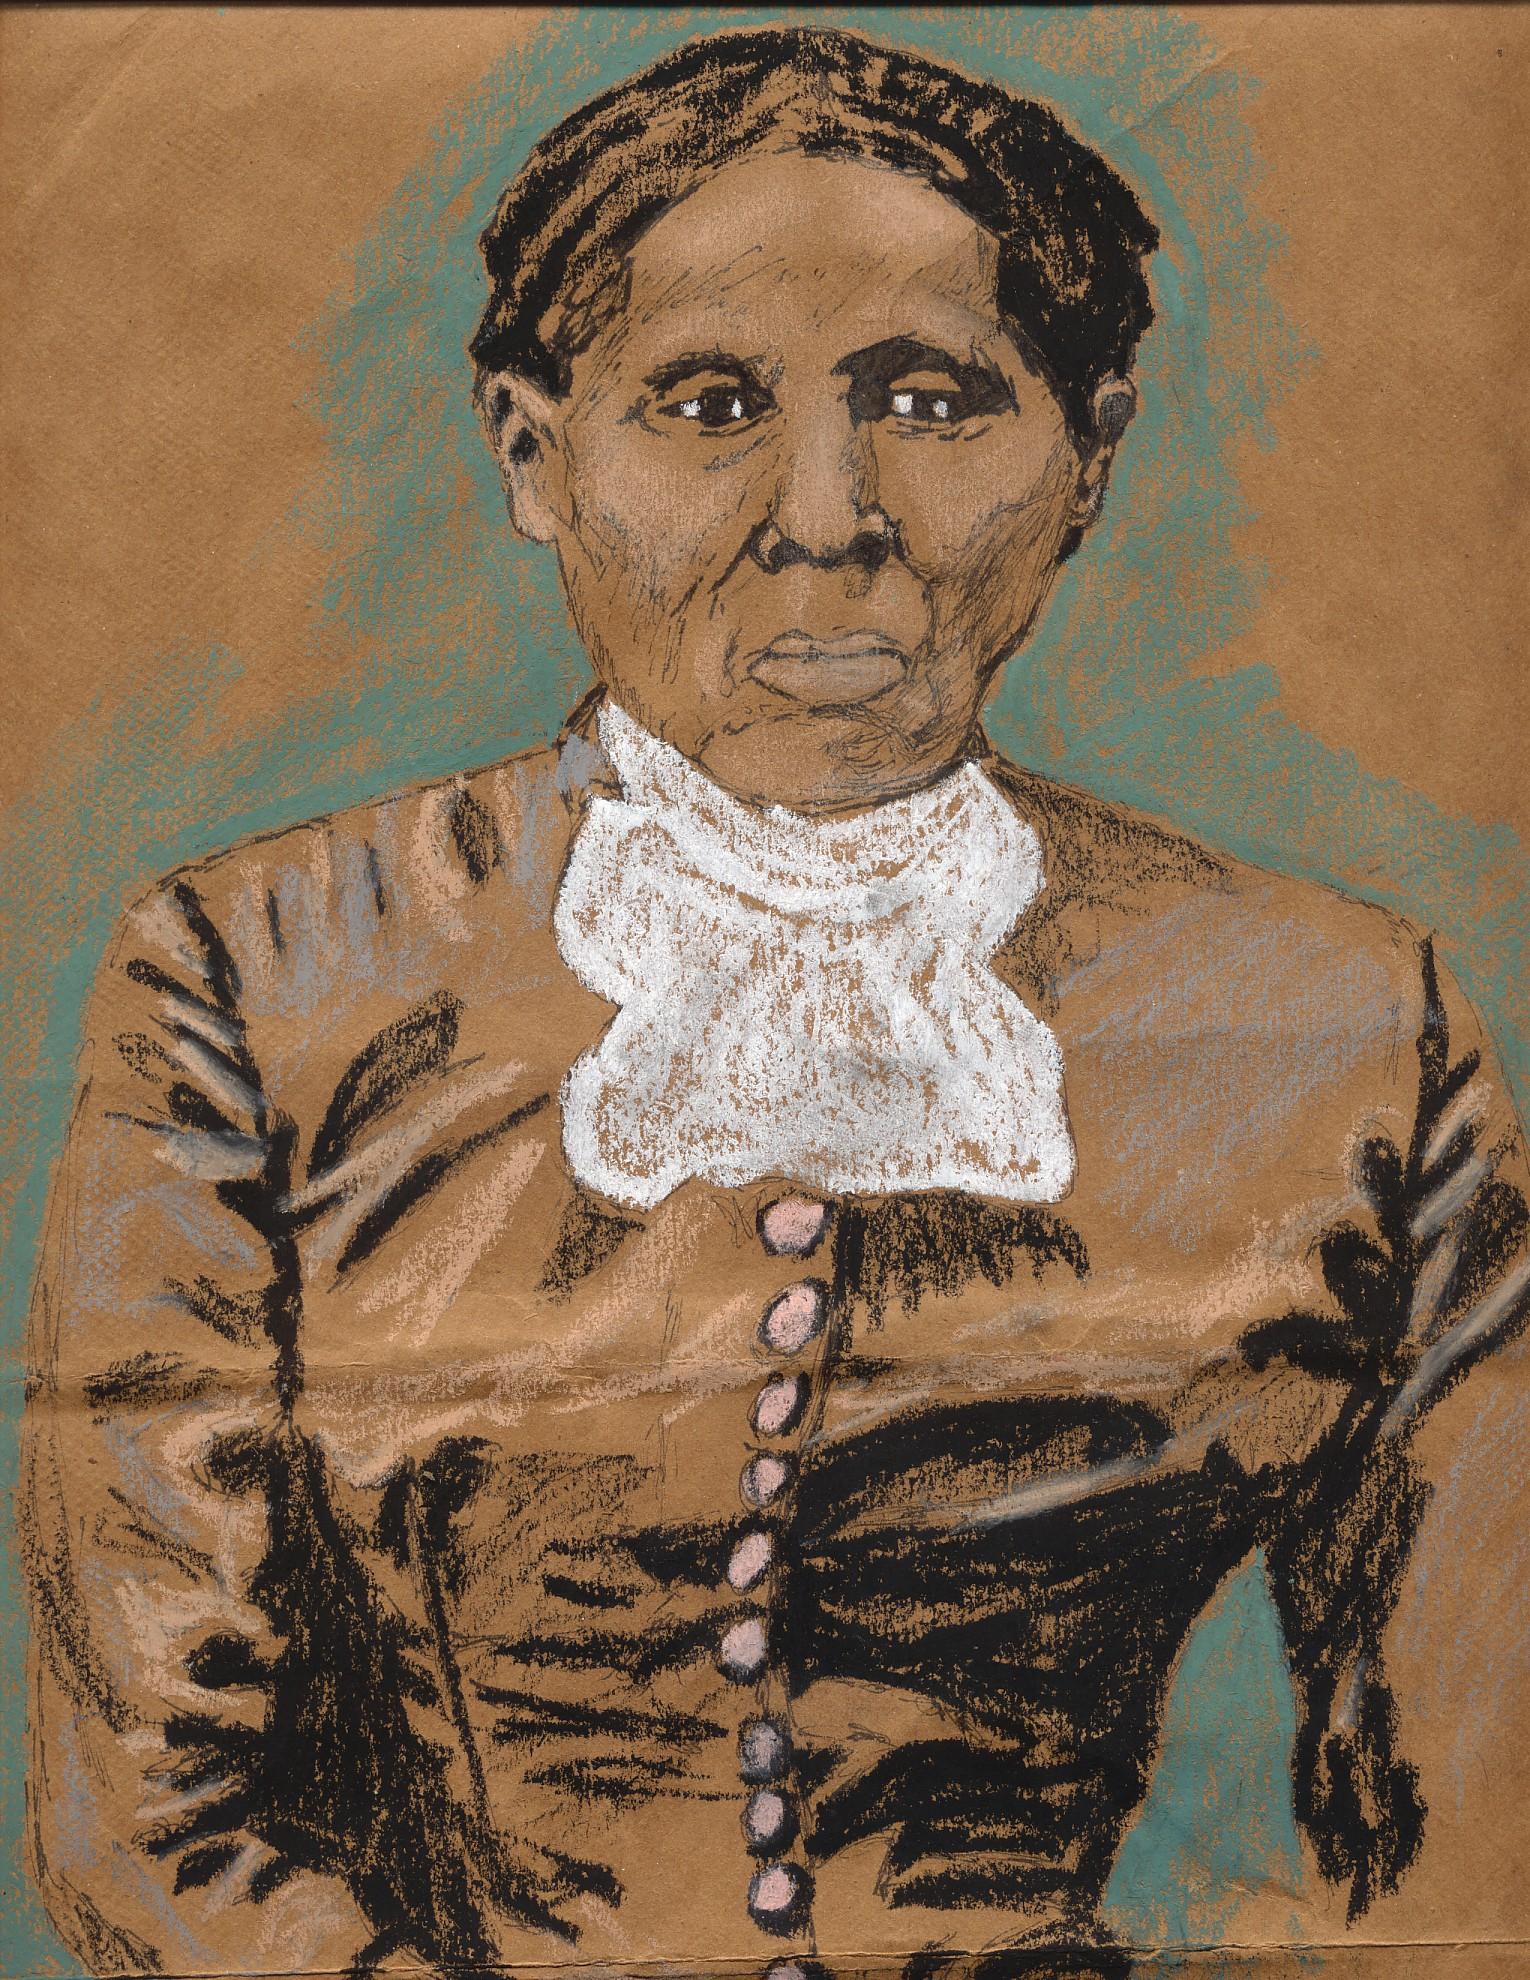 life of harriet tubman Harriet tubman also served as a spy for the us army during the civil war and was an active participant in the struggle for women's suffrage tubman was born araminta ross, to slave parents who lived on plantations in maryland.